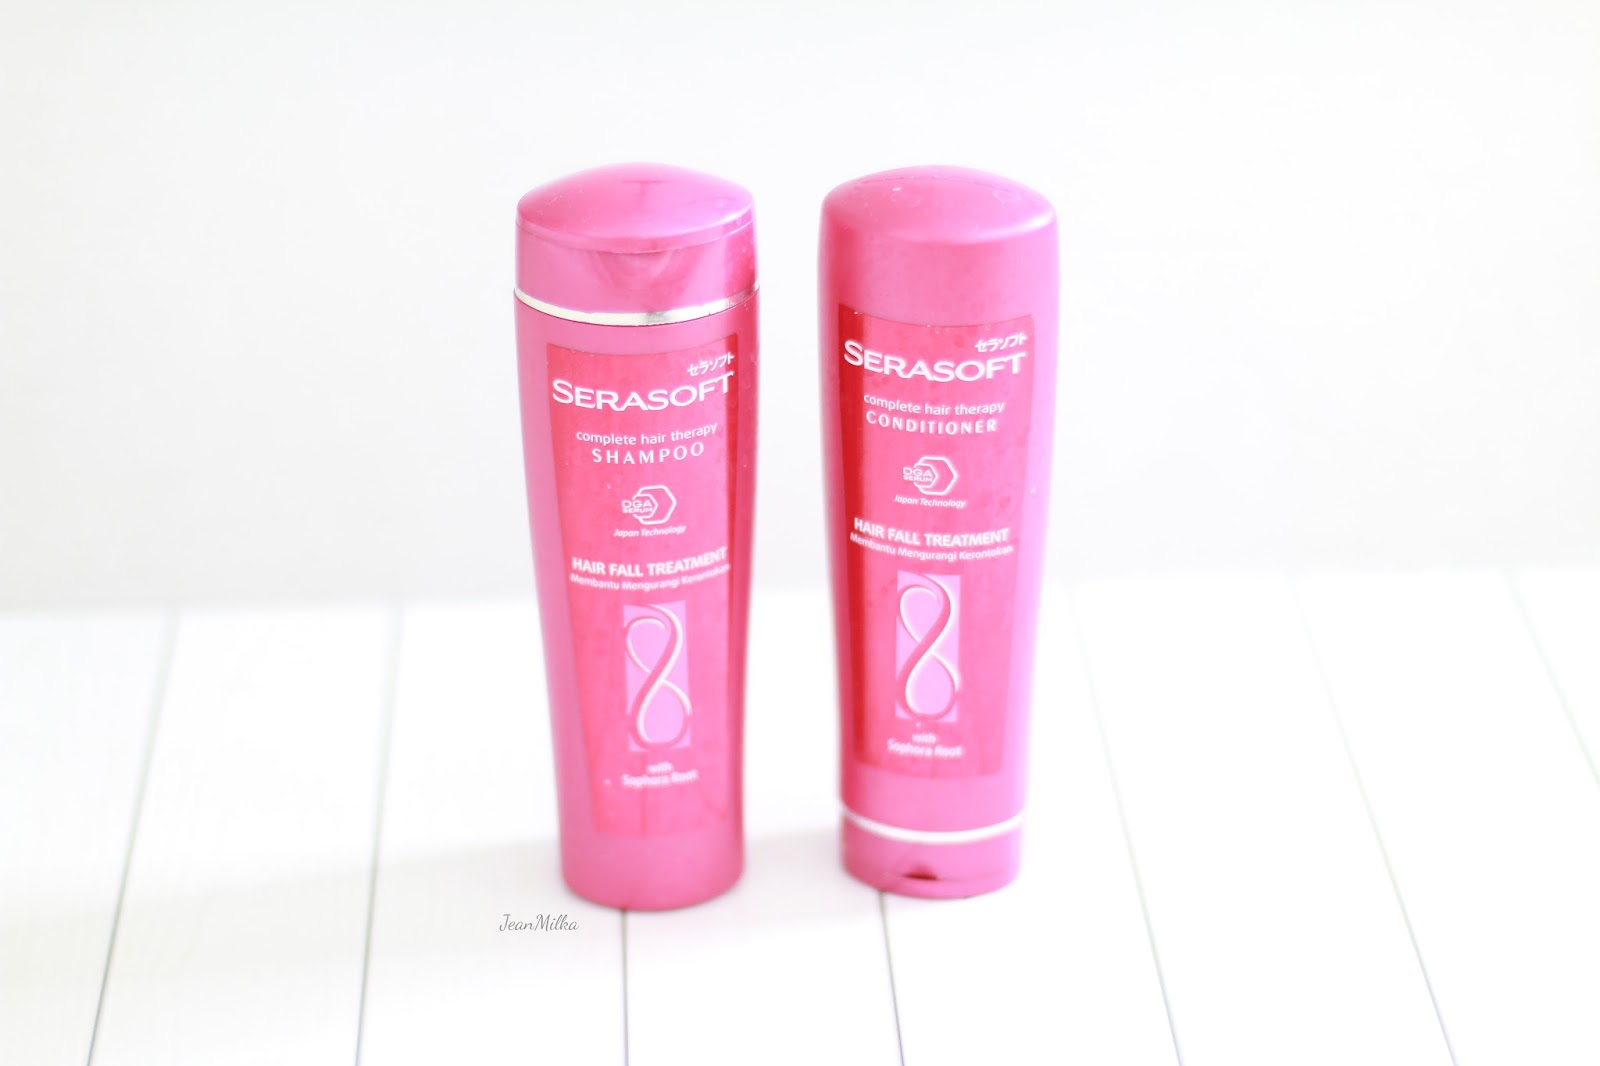 serasoft, serasoft shampoo, serasoft conditioner, shampoo, sampo, conditioner, kondisioner, hair fall treatment, review serasoft